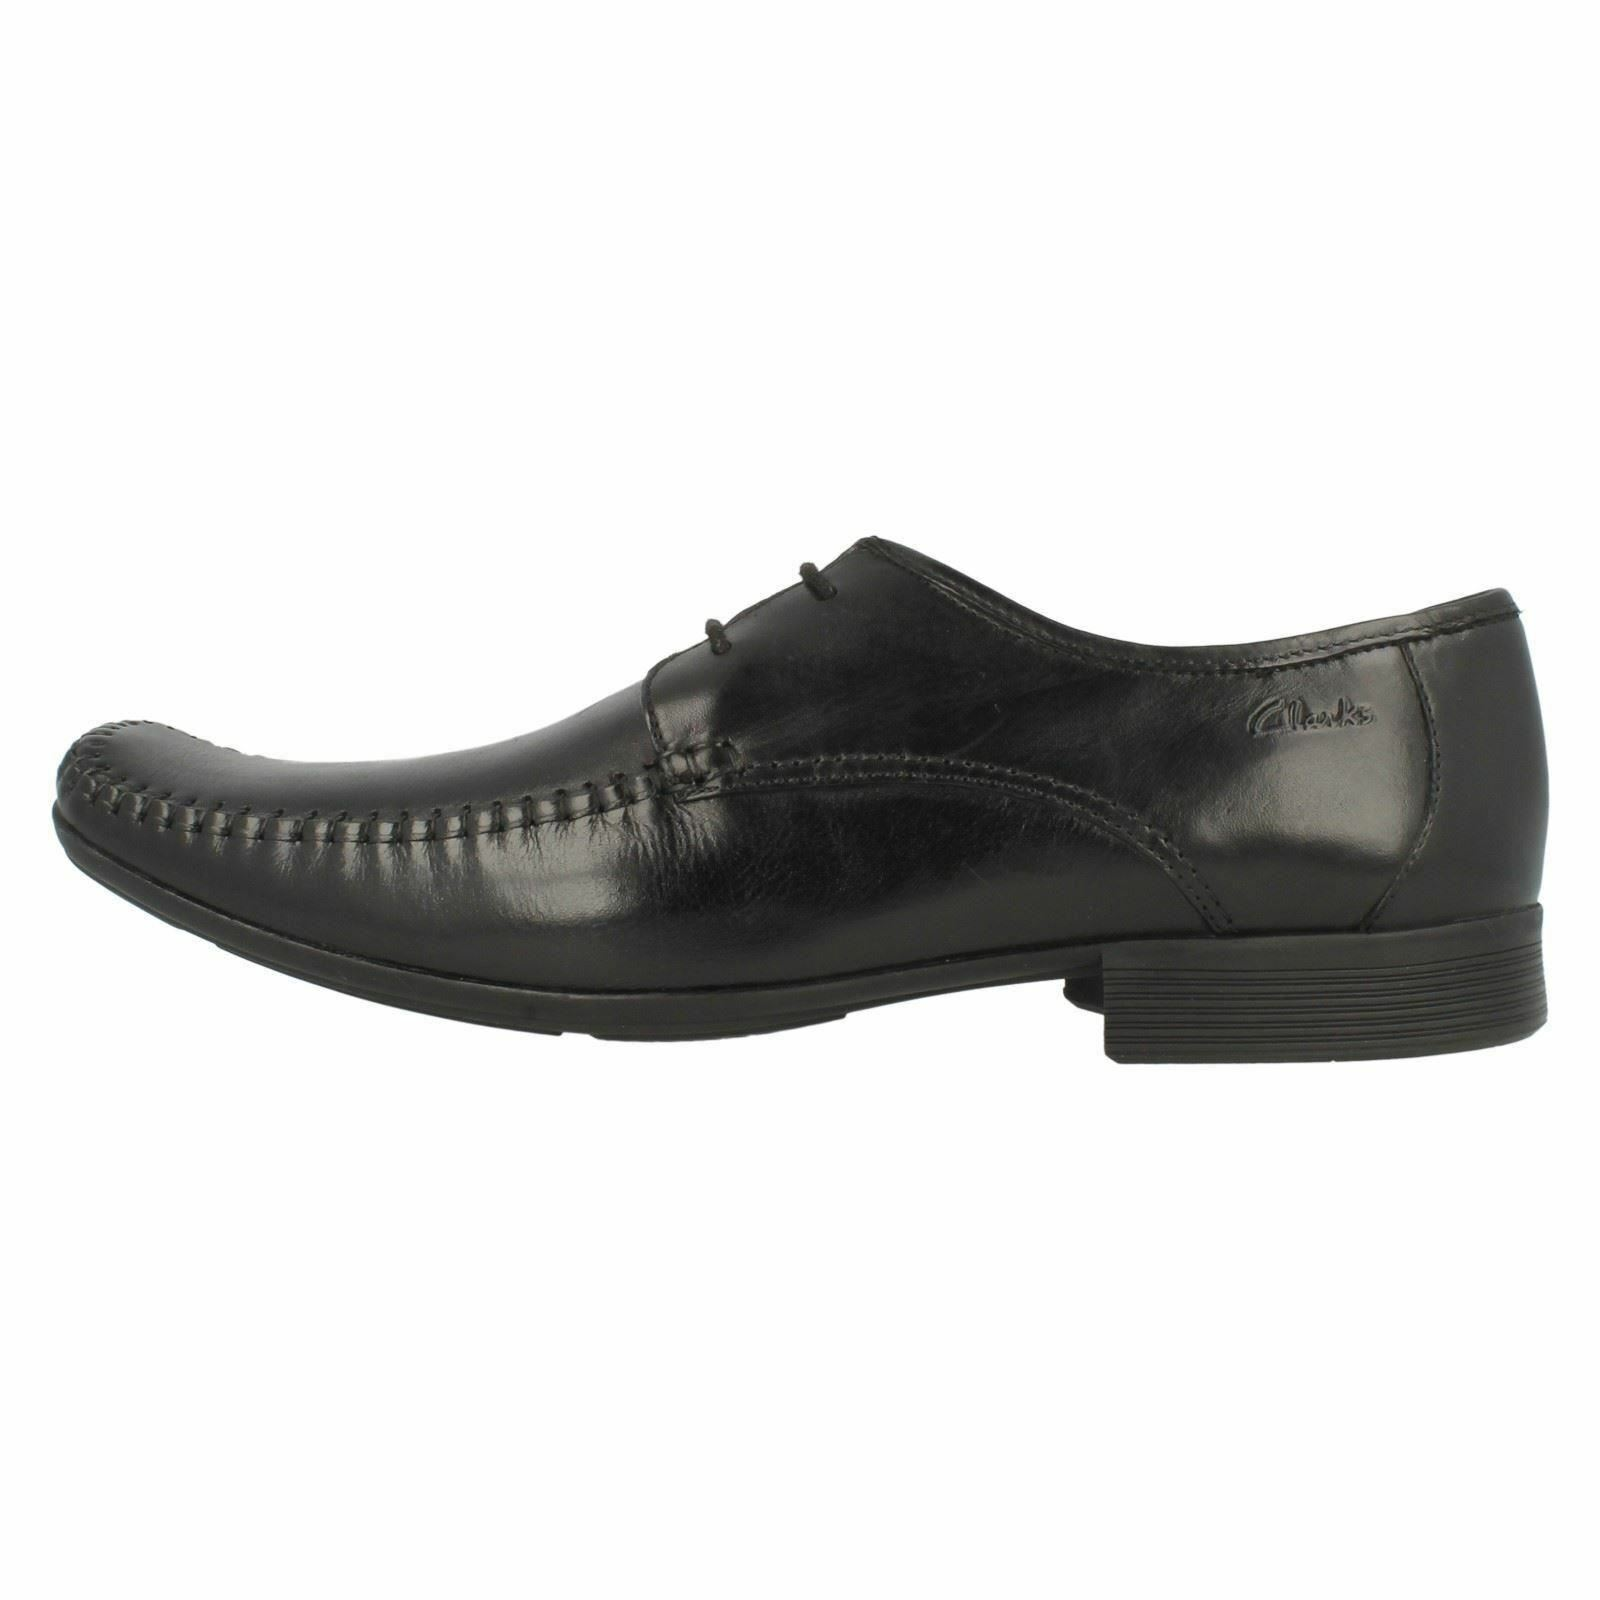 Mens Clarks Ferro Walk Black Leather Smart Moccasin Style Lace Up Shoes